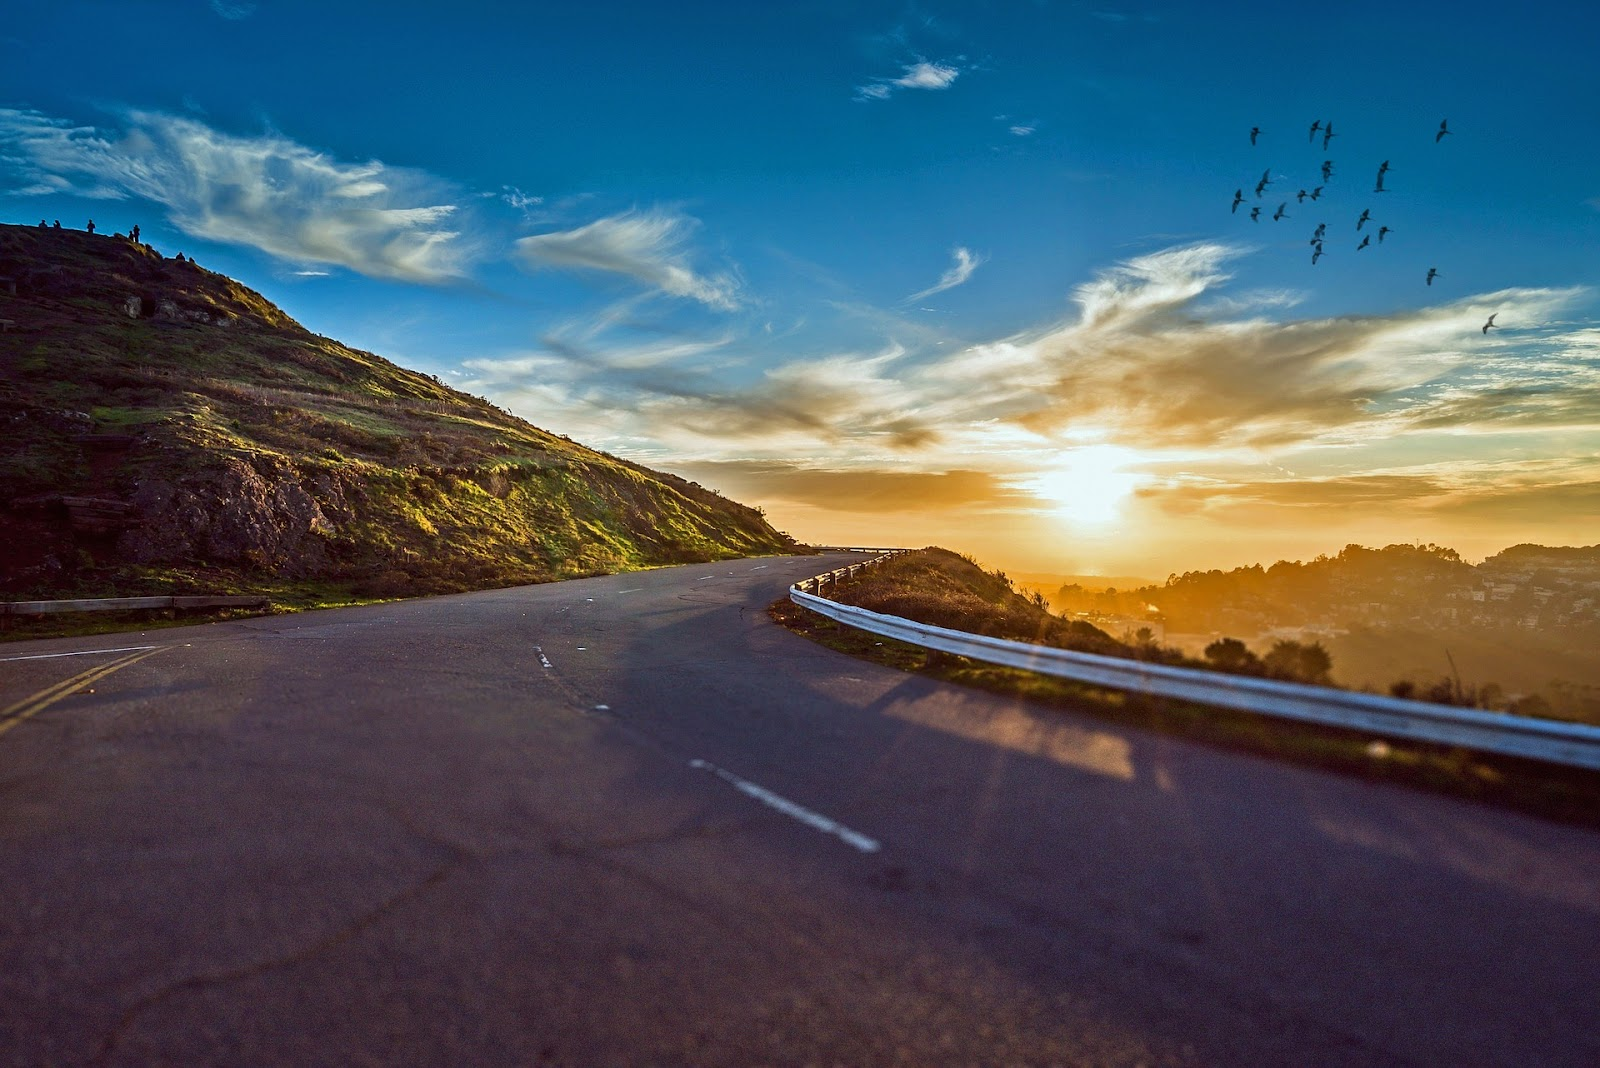 Planning A Road Trip? Here Are Some Tips To Help You Along The Way